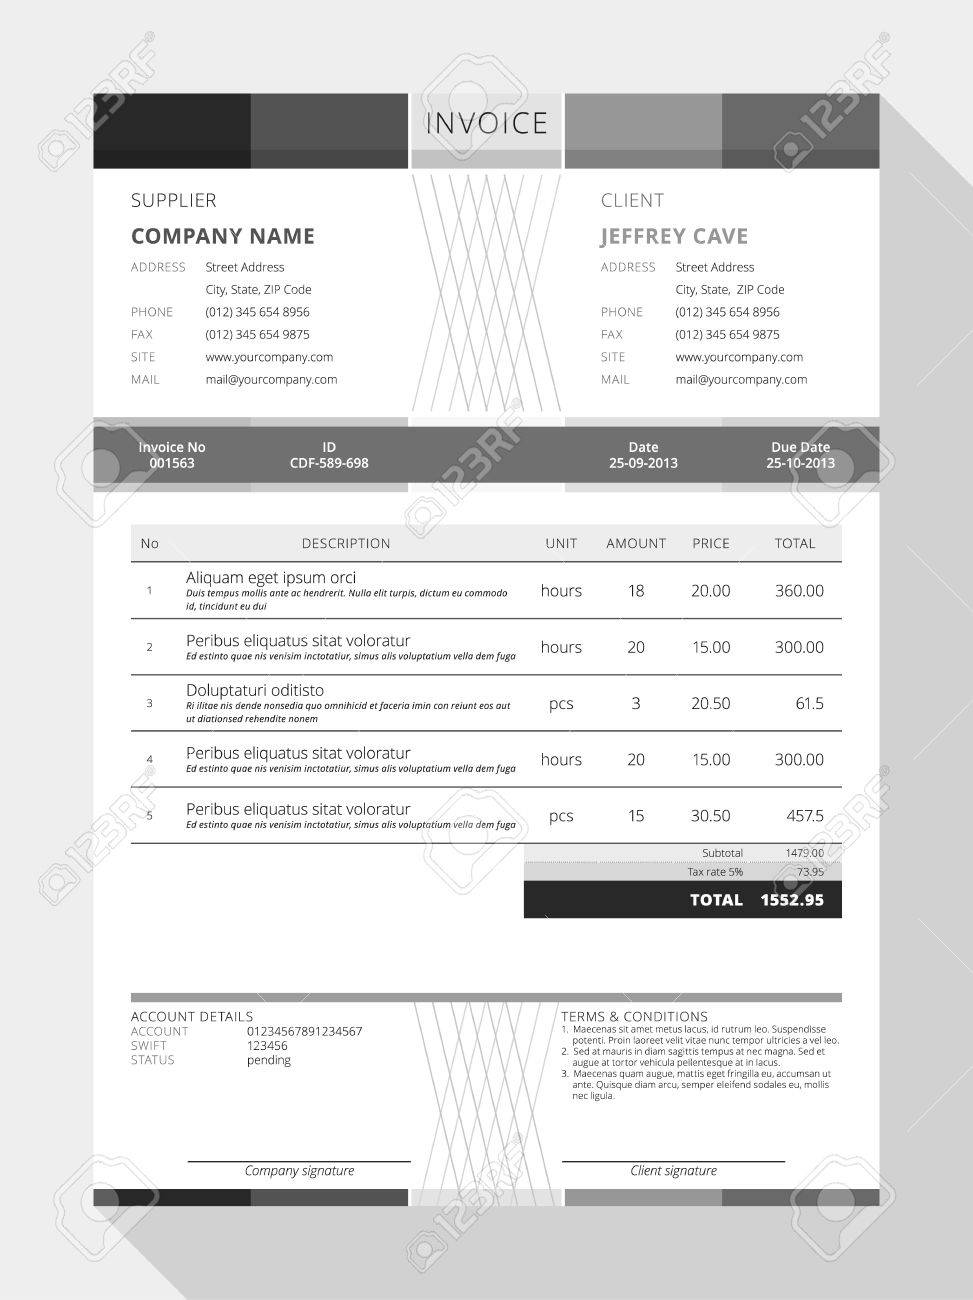 Usdgus  Unique Design An Invoice  Professional Graphic Design Invoice  With Gorgeous Vector Customizable Invoice Form Template Design Vector   Design An Invoice With Endearing Sample Tax Invoice Template Also Excise Invoice Format In Addition Sample Medical Invoice And Sample Invoice Receipt As Well As Sales Invoicing Additionally How To Do An Invoice On Excel From Happytomco With Usdgus  Gorgeous Design An Invoice  Professional Graphic Design Invoice  With Endearing Vector Customizable Invoice Form Template Design Vector   Design An Invoice And Unique Sample Tax Invoice Template Also Excise Invoice Format In Addition Sample Medical Invoice From Happytomco